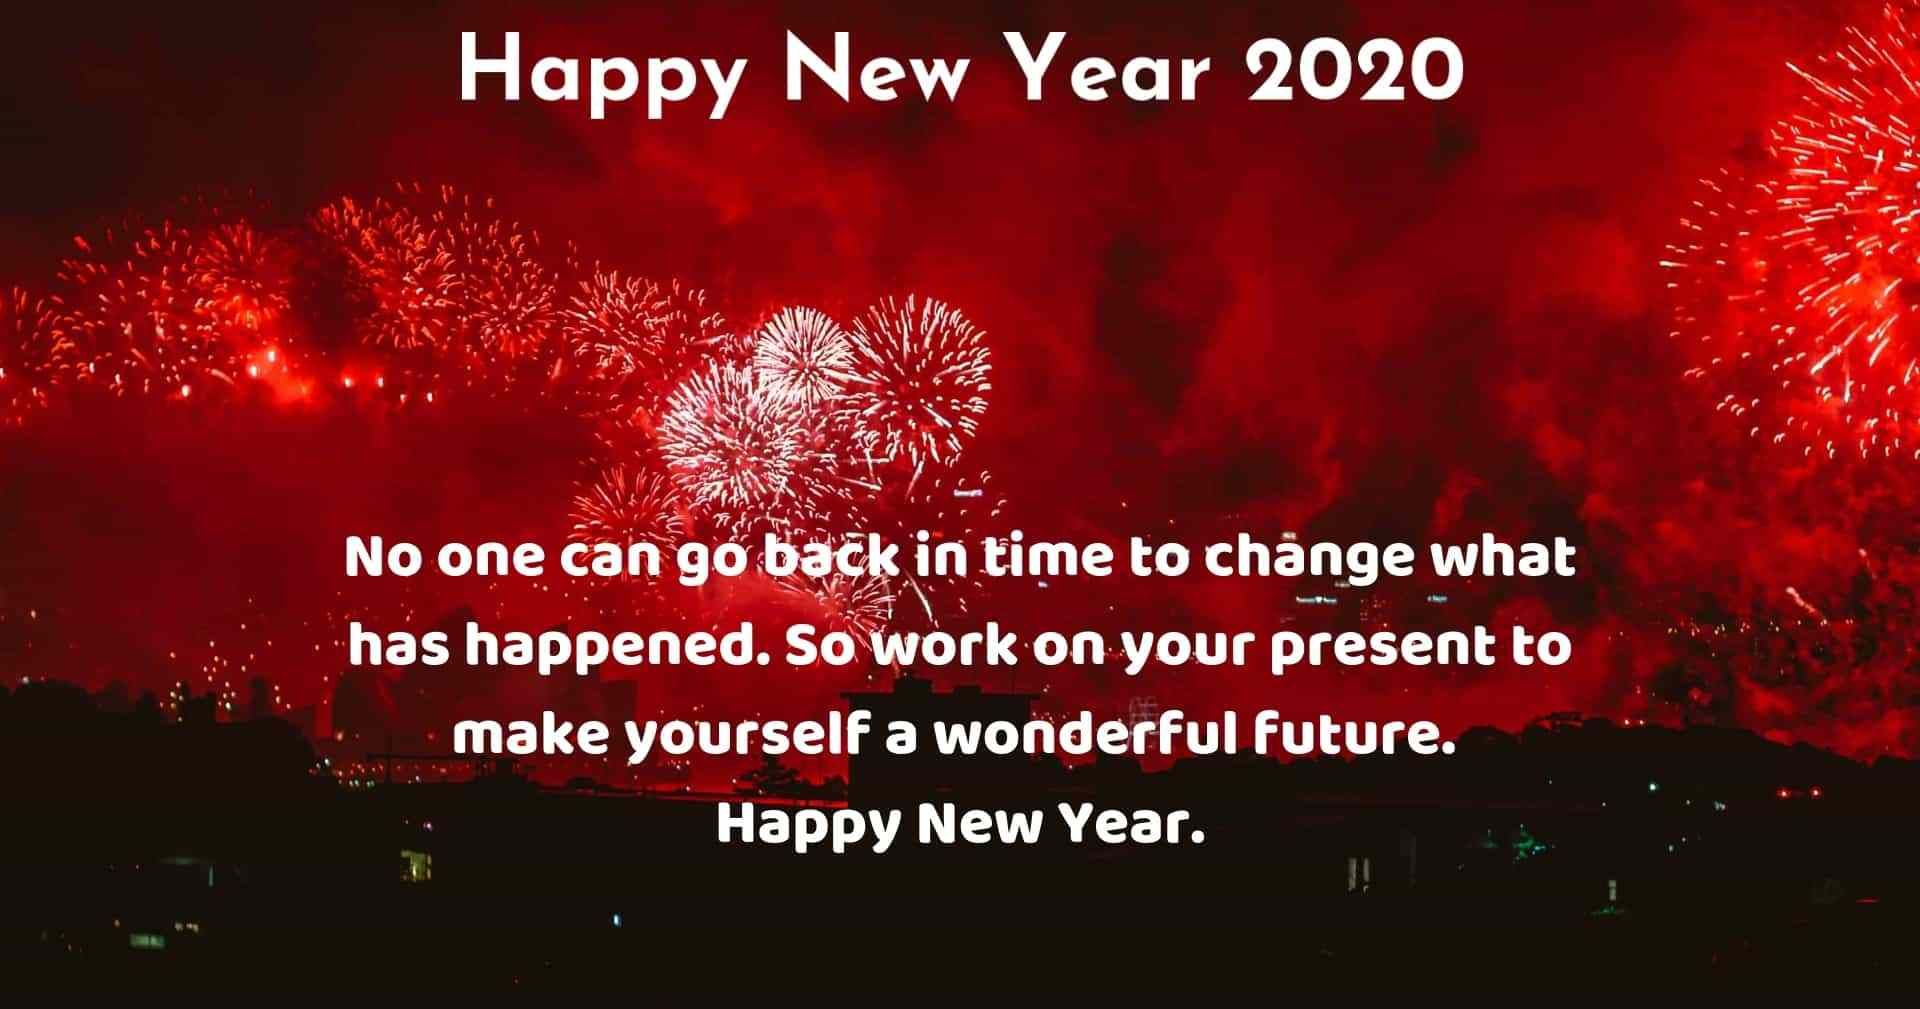 Happy New Year 2020 Wishes For Everyone New Year Wishes Happy New Year Message Happy New Year Greetings